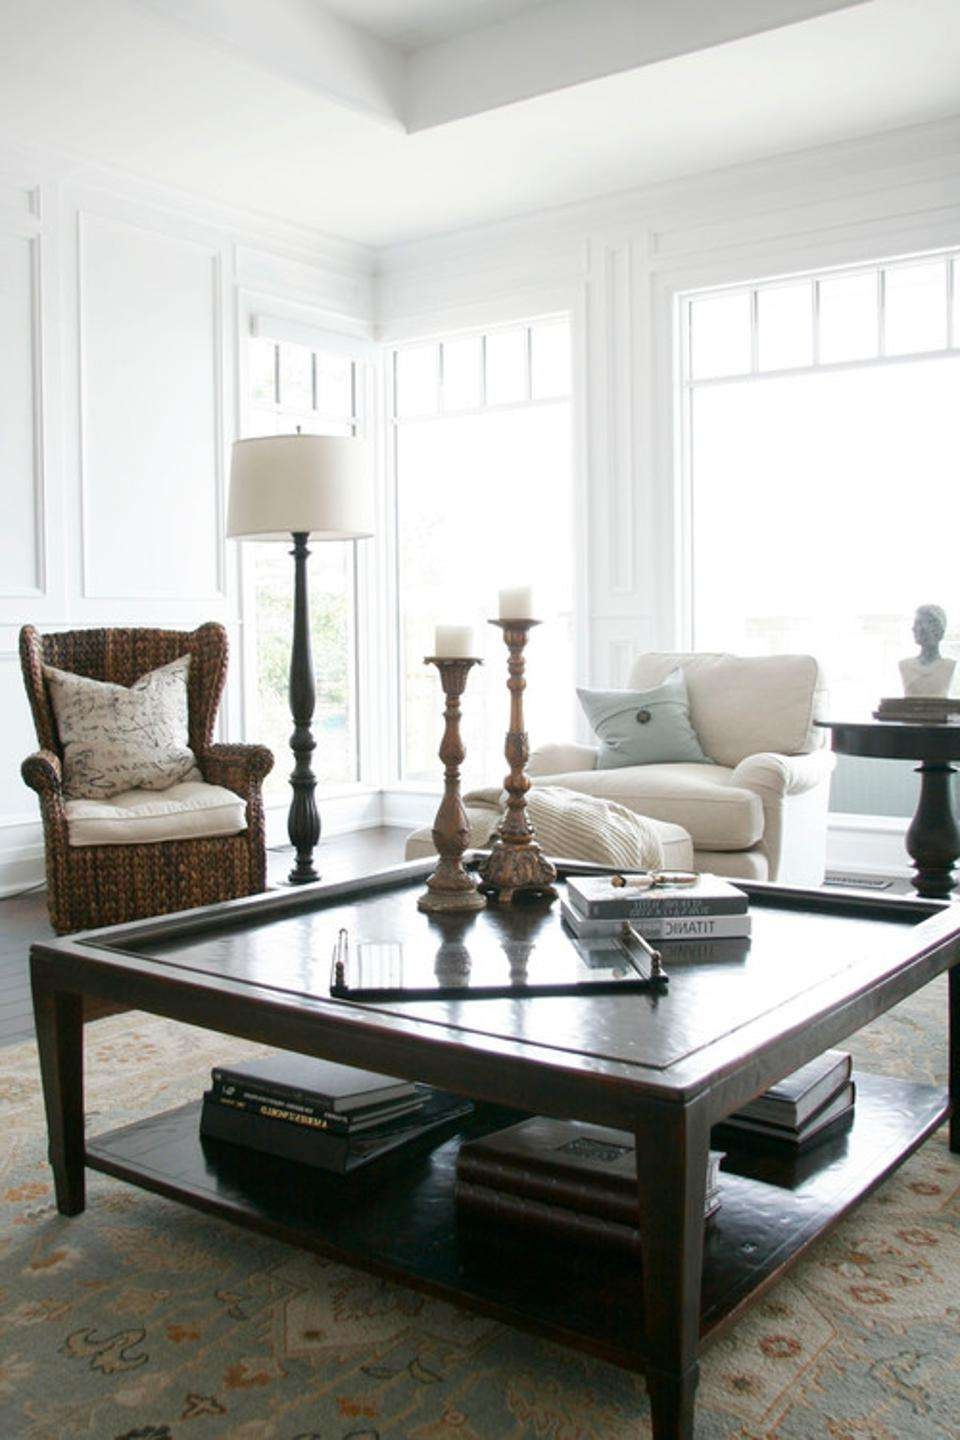 Recent Large Square Coffee Tables Pertaining To Coffee Table, Extra Large Square Coffee Table Large Coffee Tables (View 13 of 20)